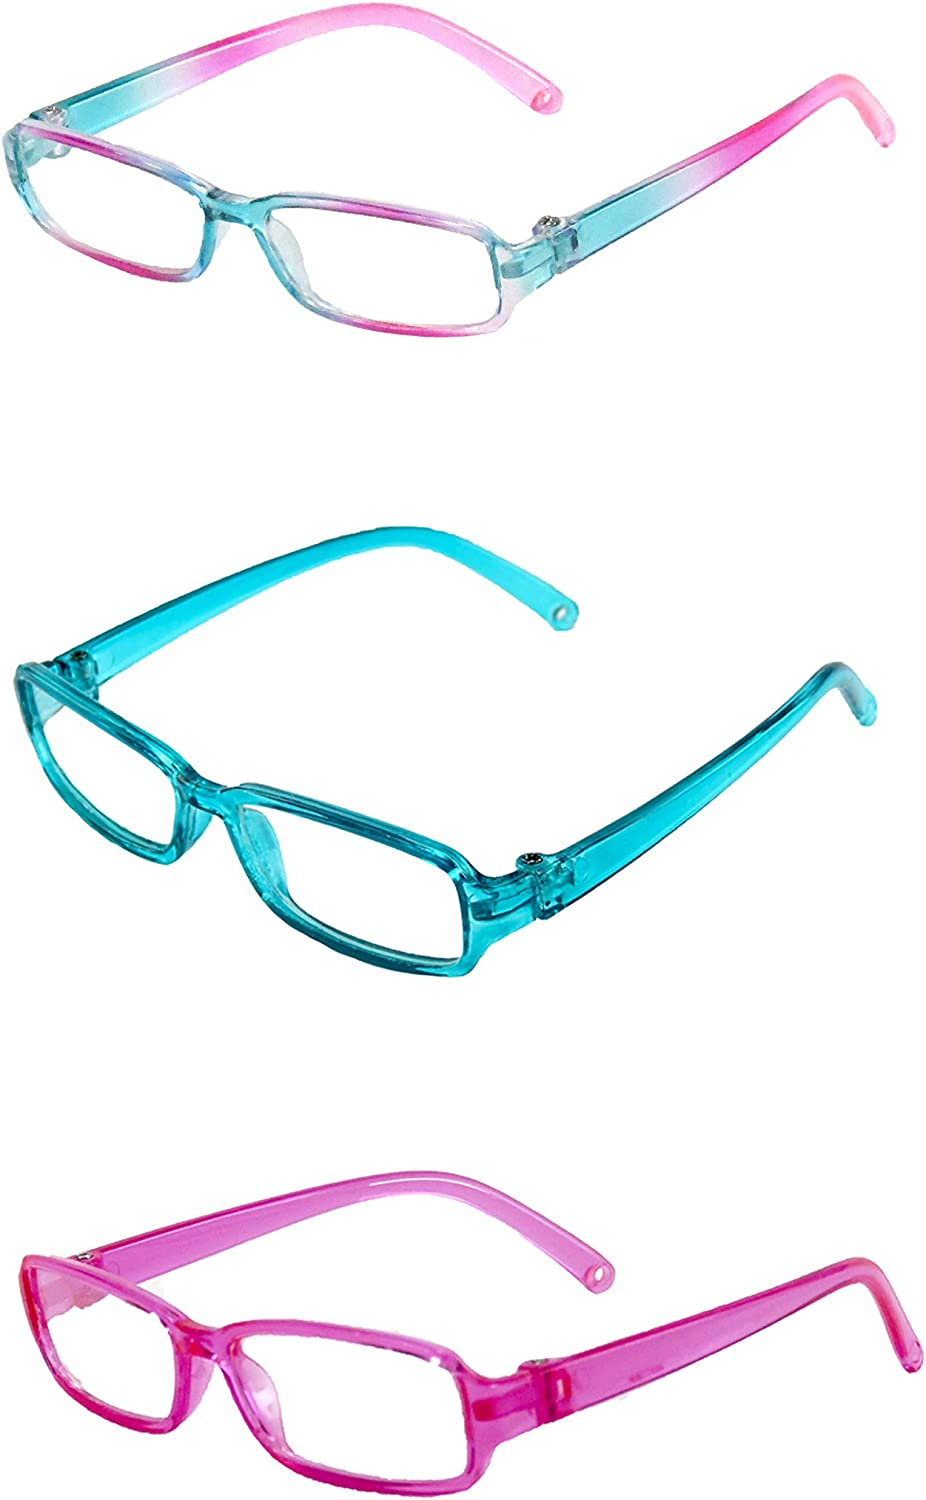 American Fashion World Three Pairs of Multicolored Rectangle Glasses Made to fit 18 inch Dolls Such as American Girl Dolls